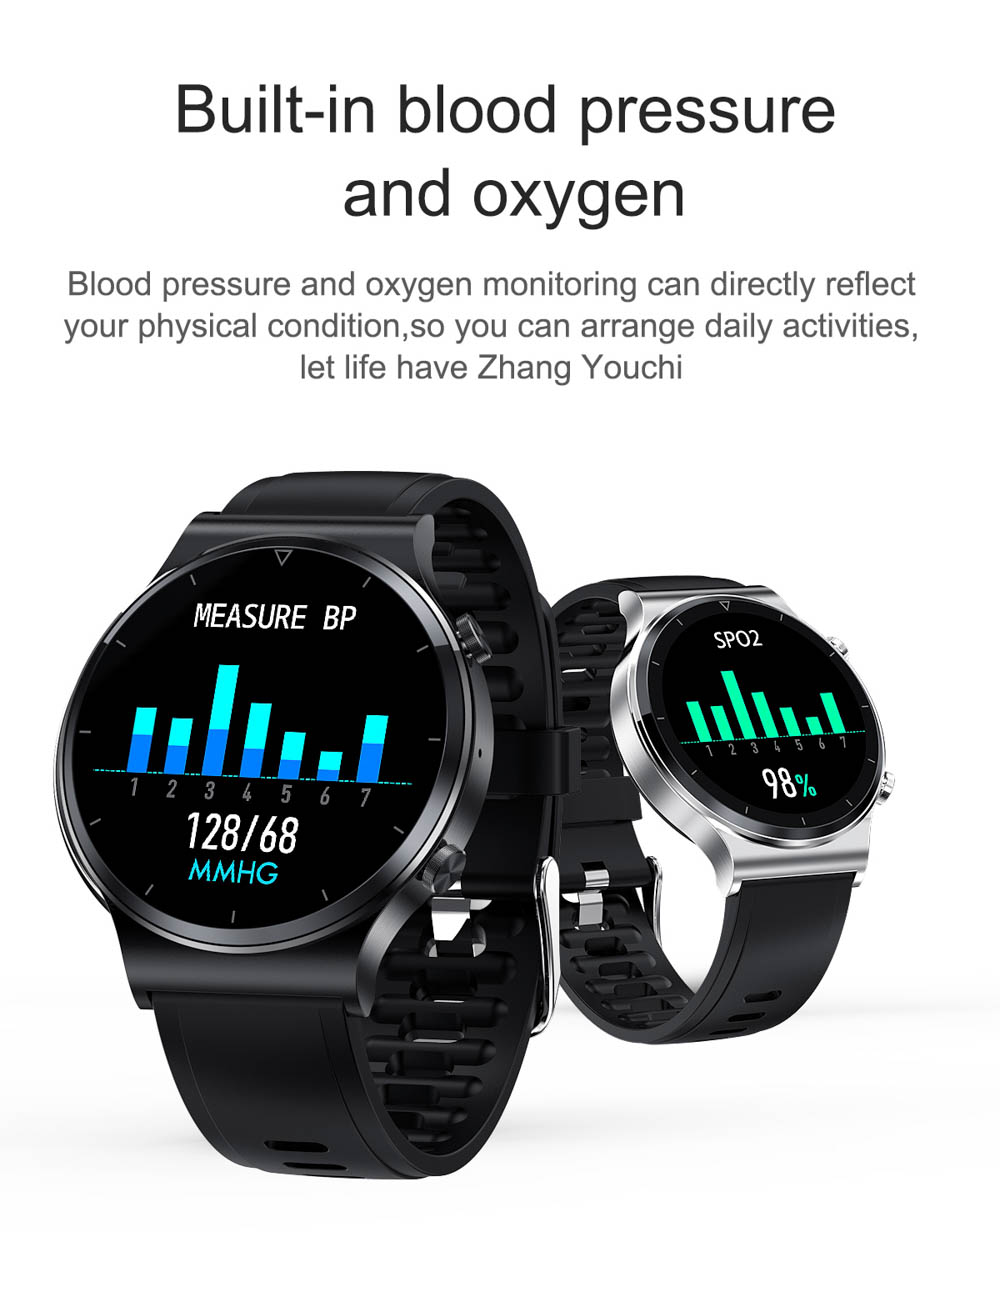 Hf85547f120b841e1be3af35db9c43becB NUOBO 2021 New Smart Watch Men Bluetooth Call Heart Rate Blood Pressure Sports IP68 Waterproof Smartwatch for Android IOS Phone